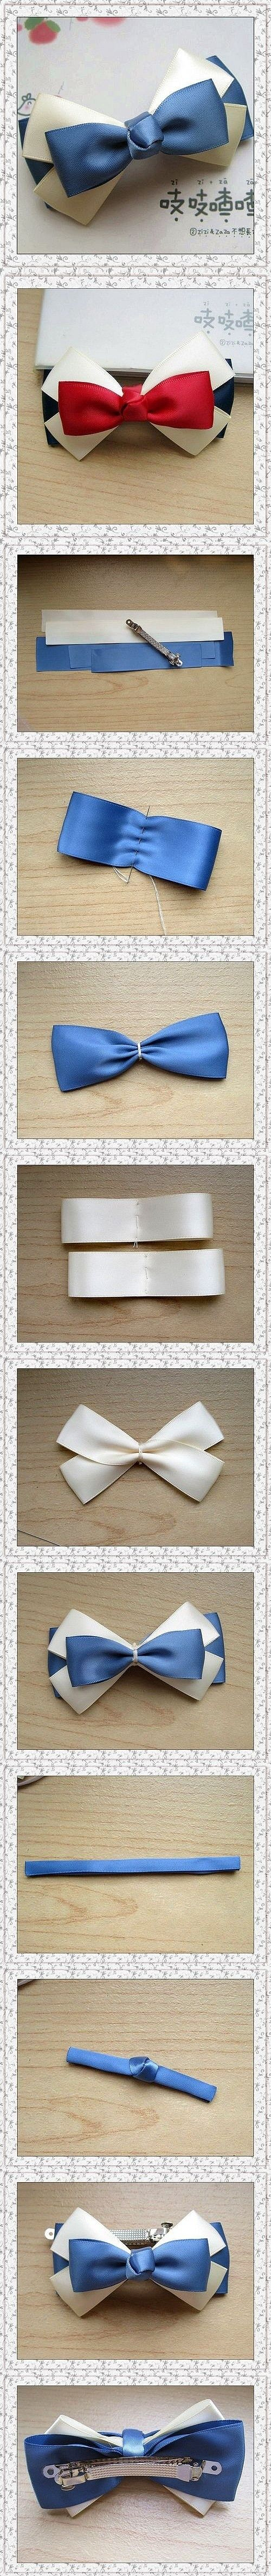 hair bow tie DIY                                                                                                                                                      More